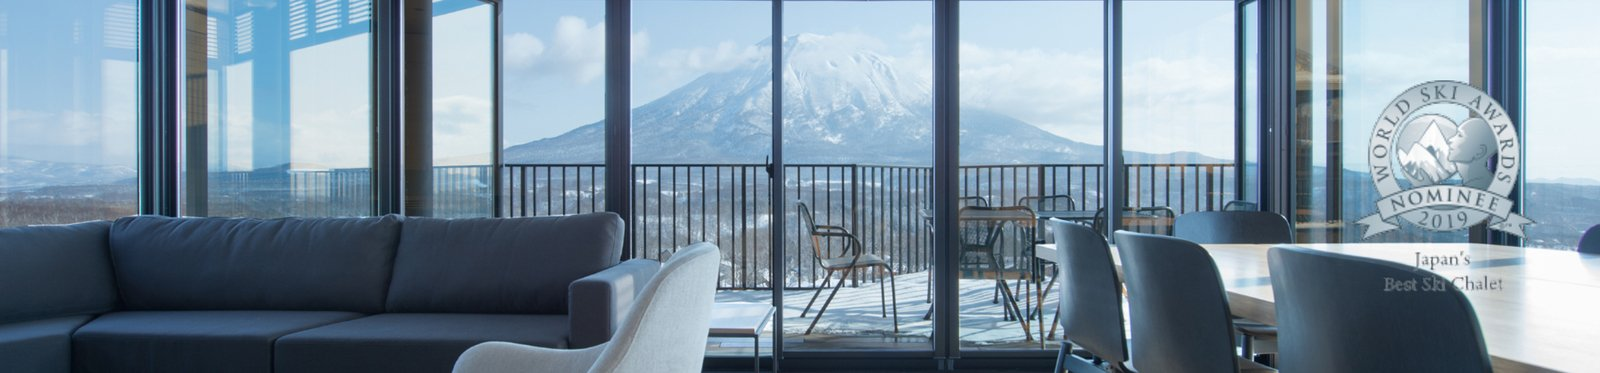 aspect-vacation-niseko